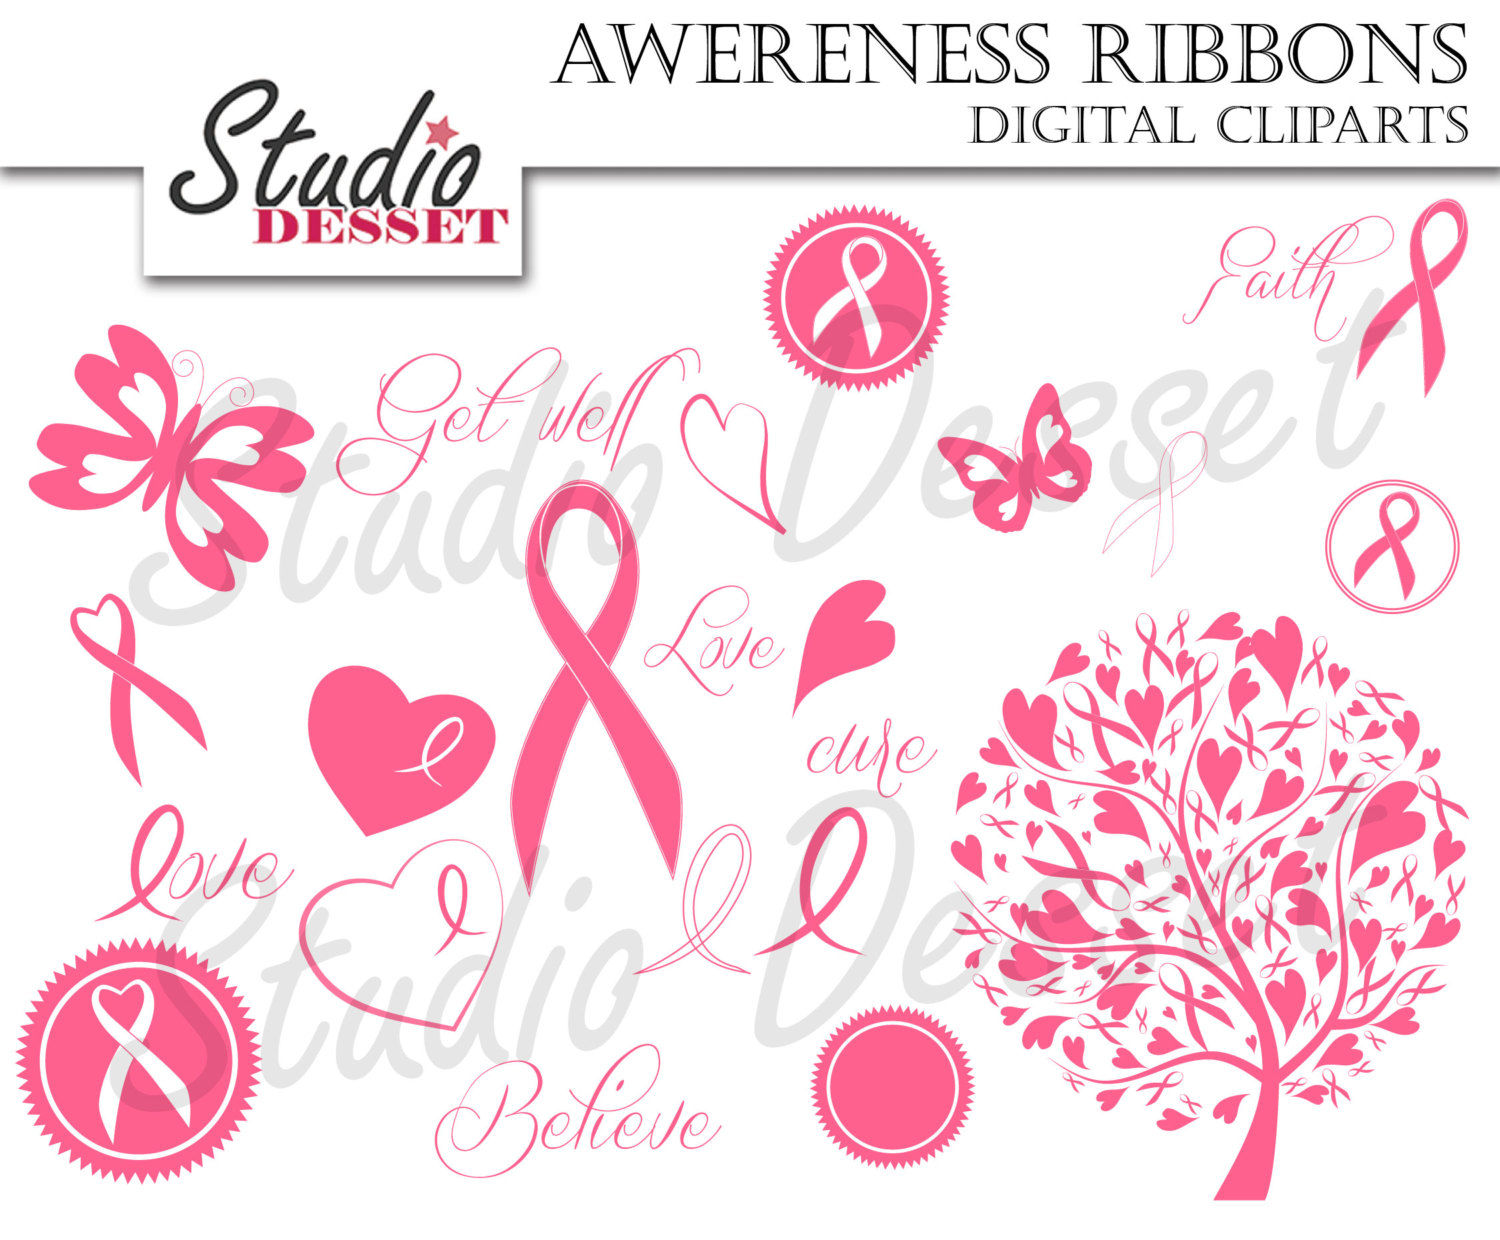 Cancer clipart causes cancer. Awareness ribbon breast ribbons